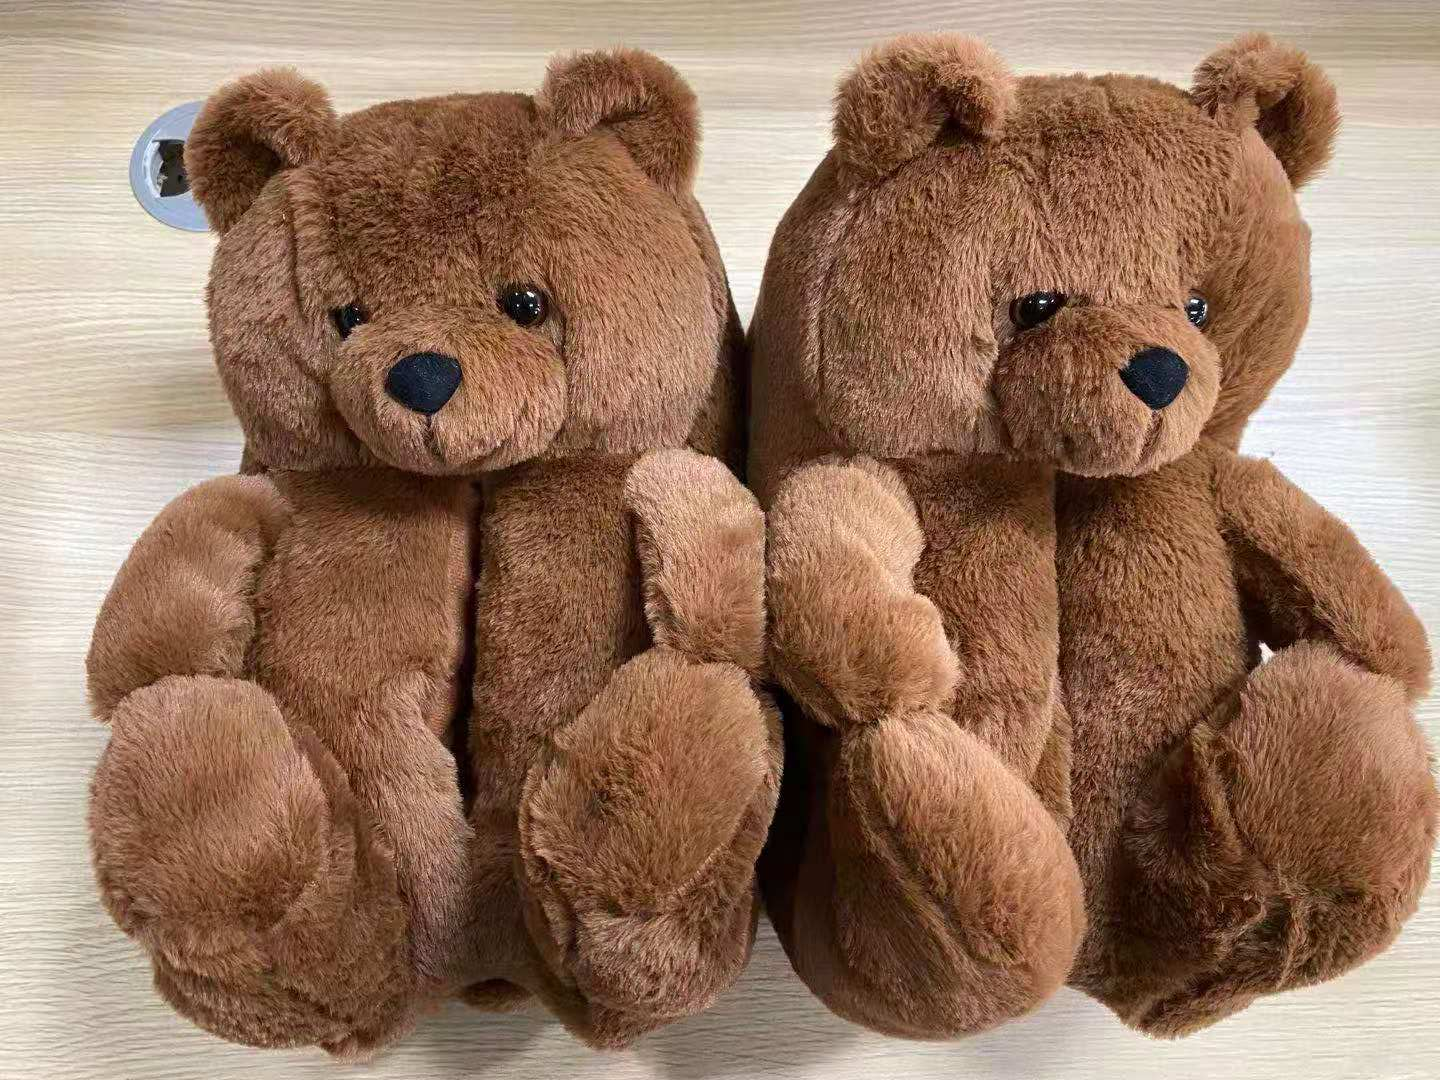 2020 Cheap teddy bear Slippers brown Indoor Lady Shoe Women House Slipper Plush For Girls